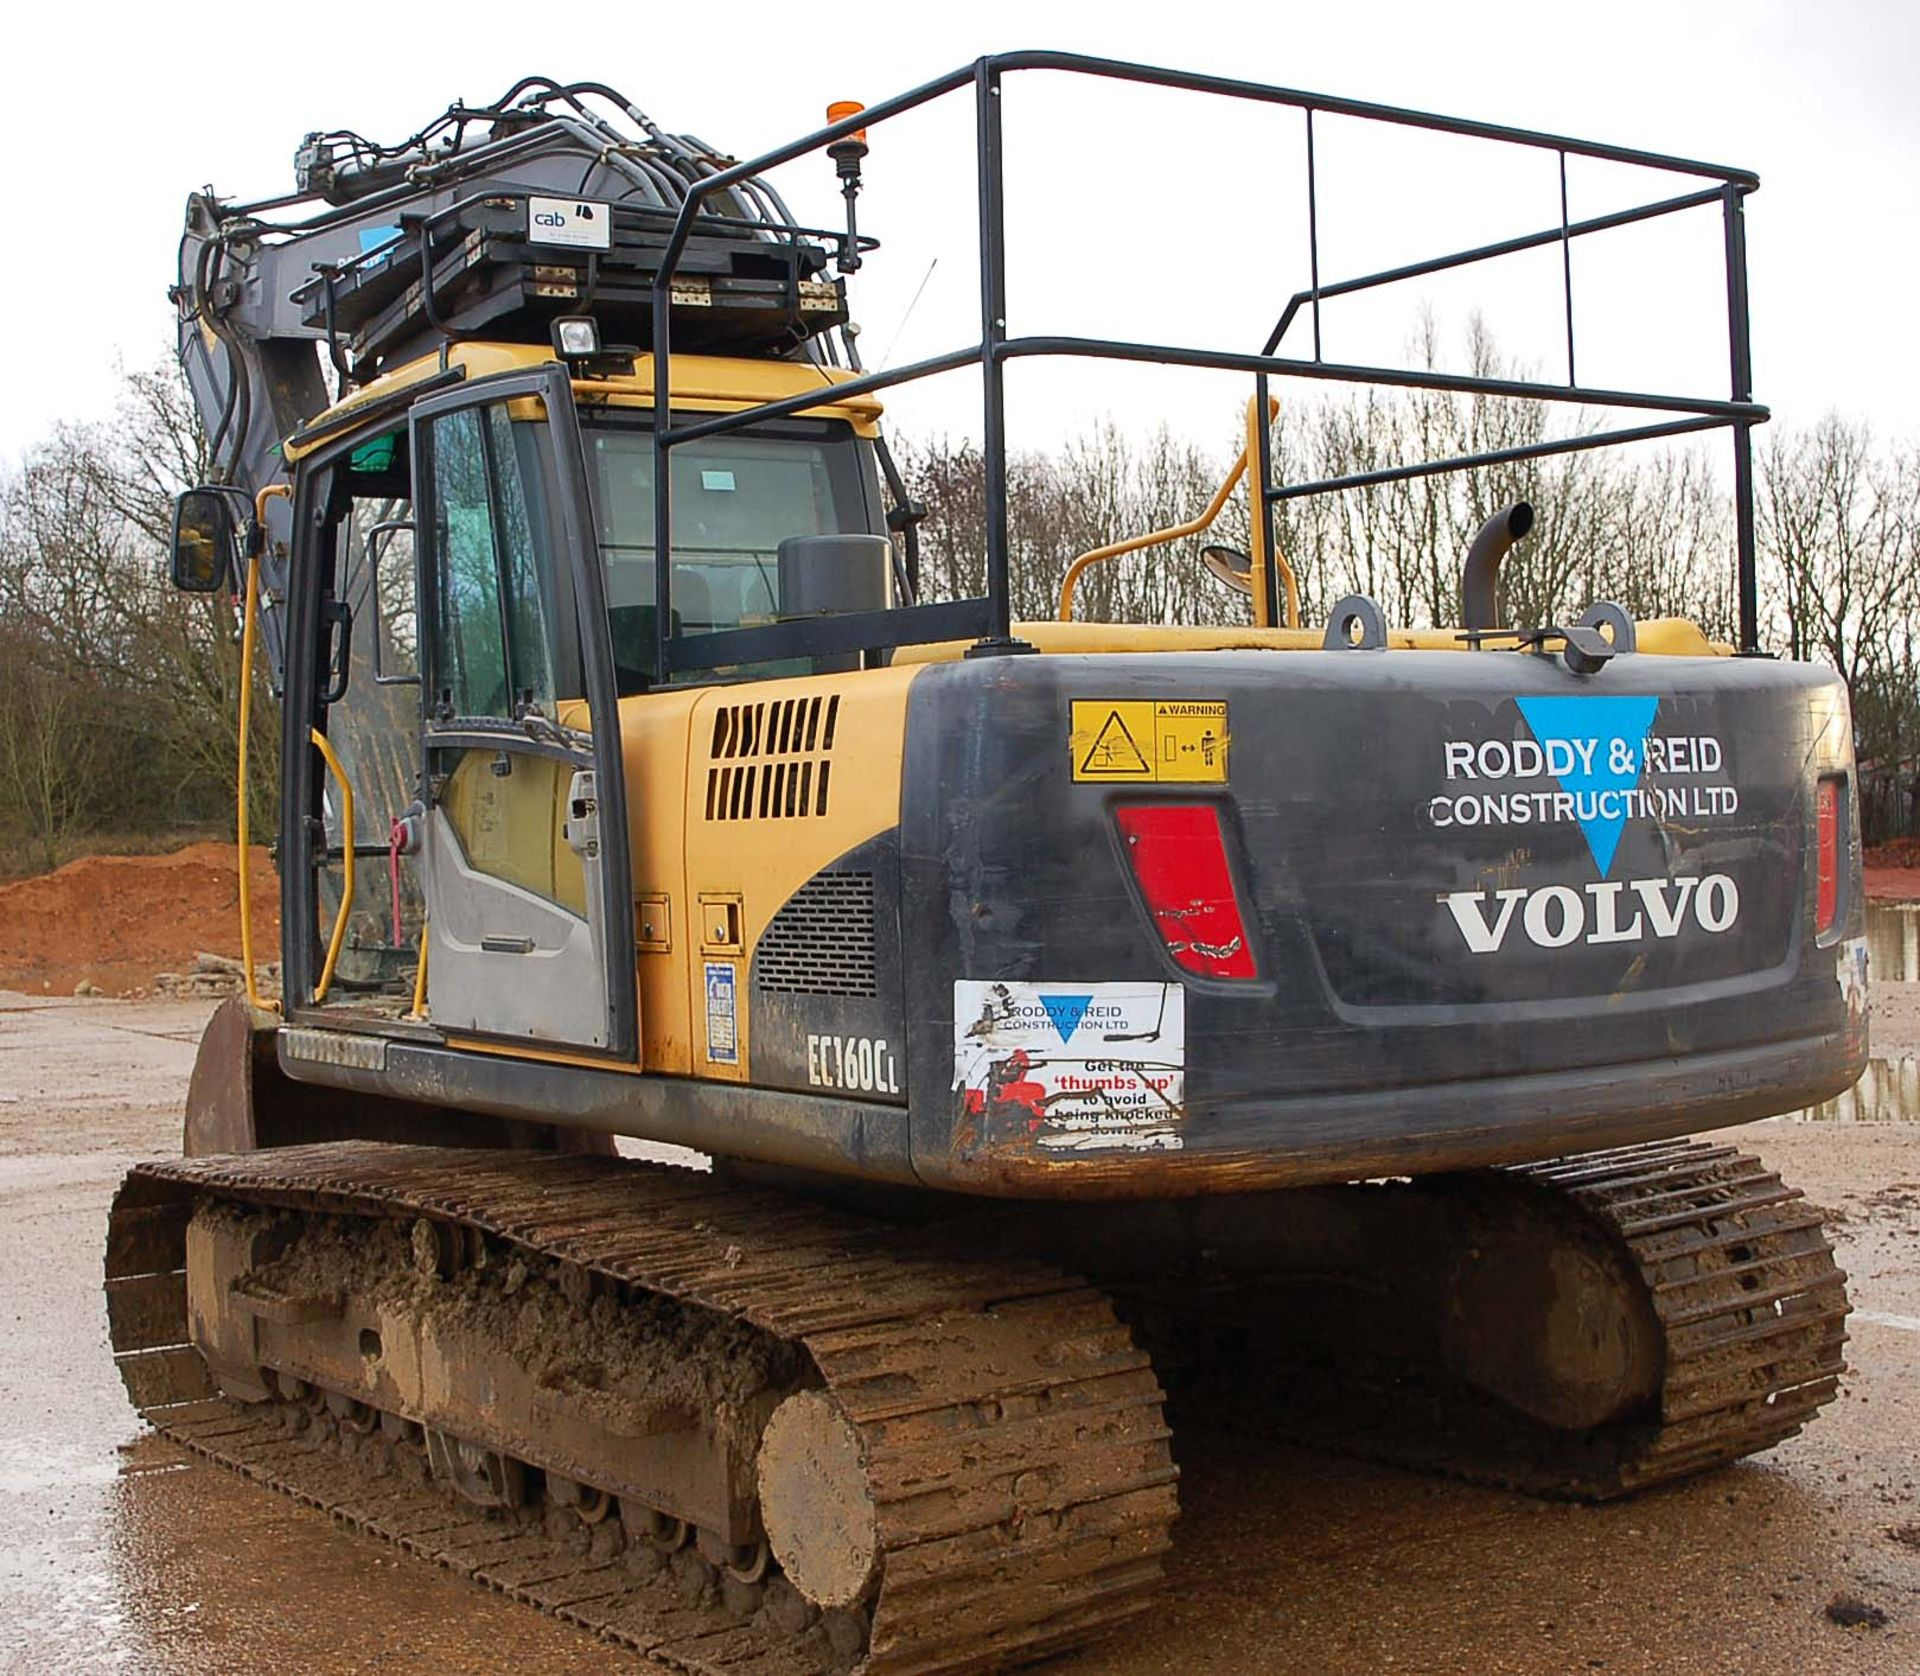 Lot 45 - A VOLVO FEC160CL 16 Tonne 360 Degree Slew Tracked Excavator Serial Number: 120710 (2010) with Fitted